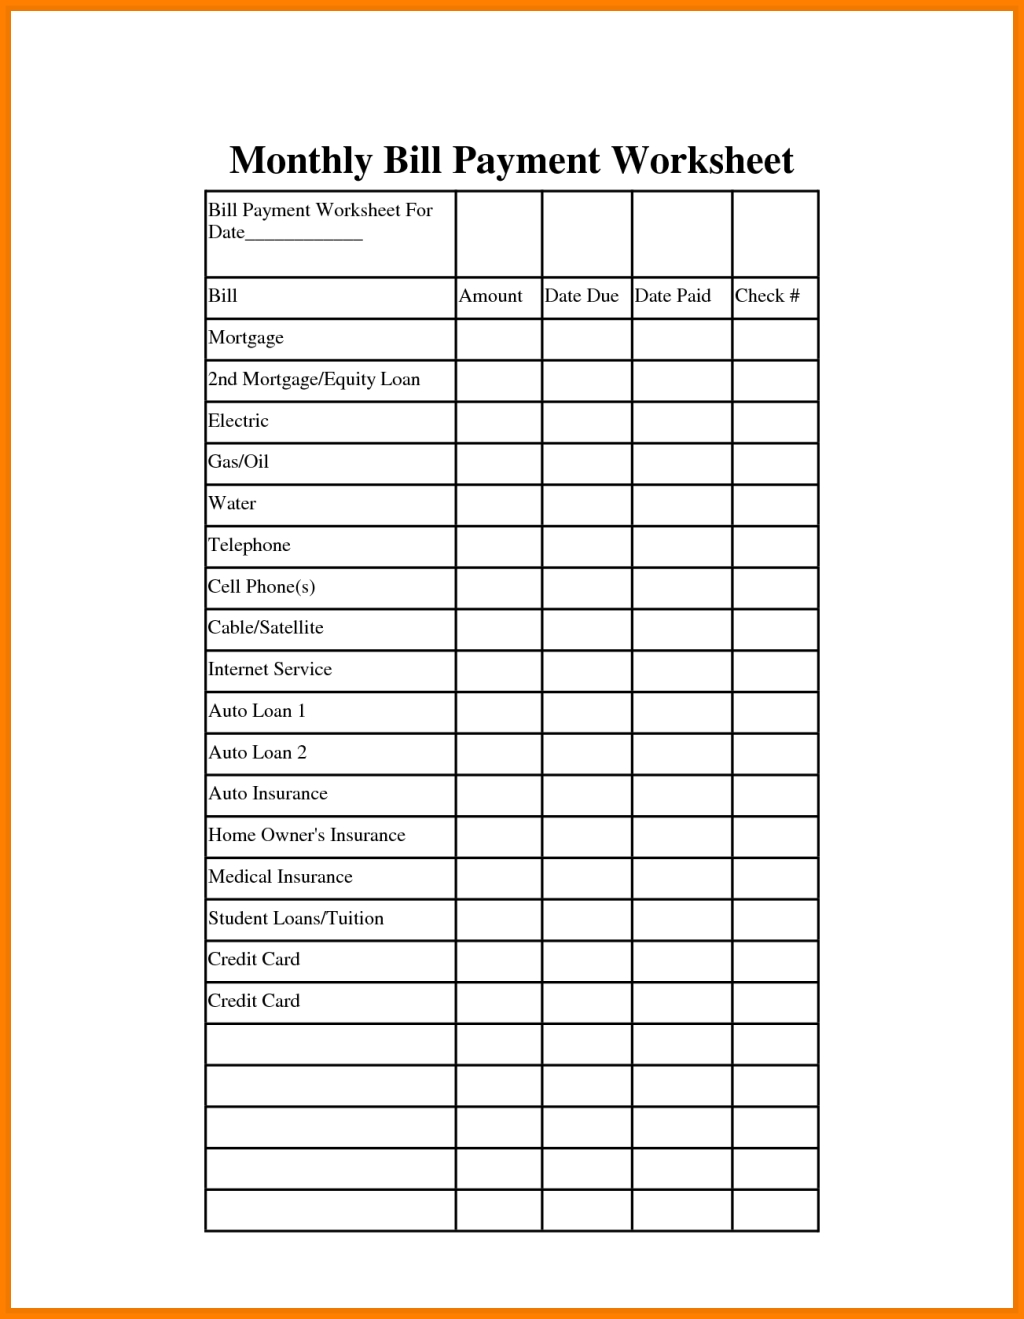 Schedule Of Payments Template - Shefftunes.tk  Custom Worksheet Monthly Bill Payment